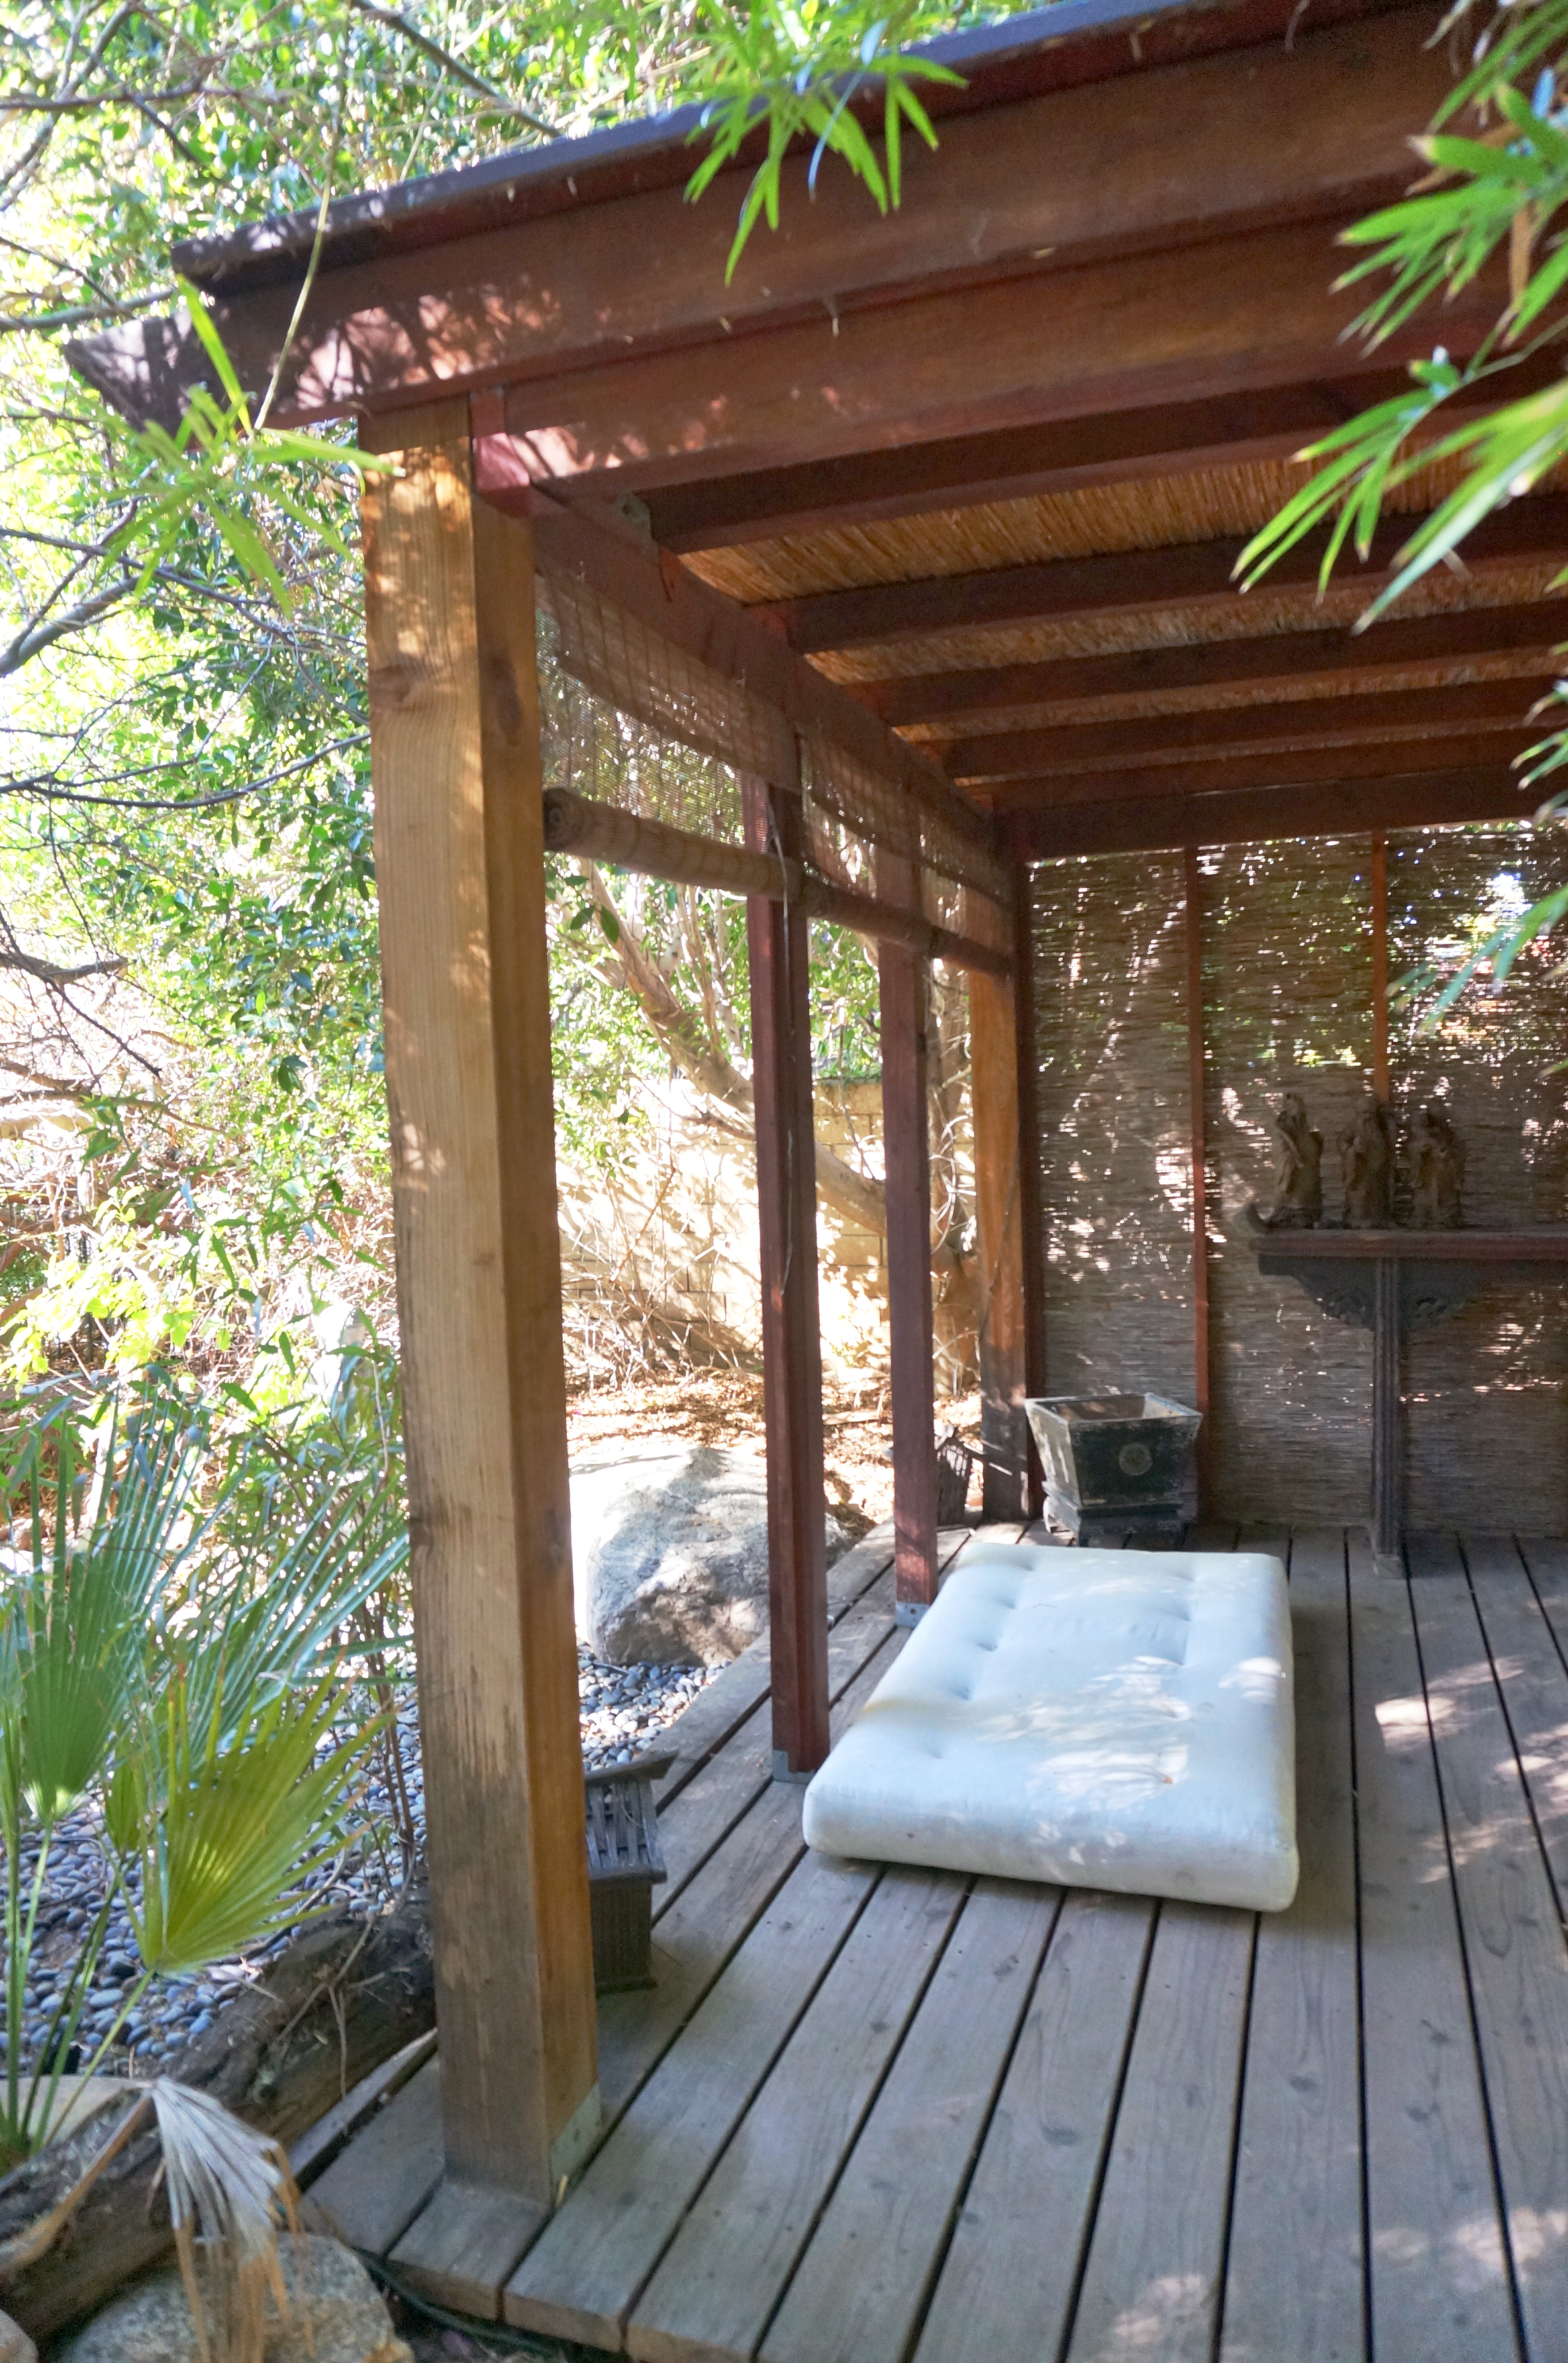 Meditation station in a beautiful garden space